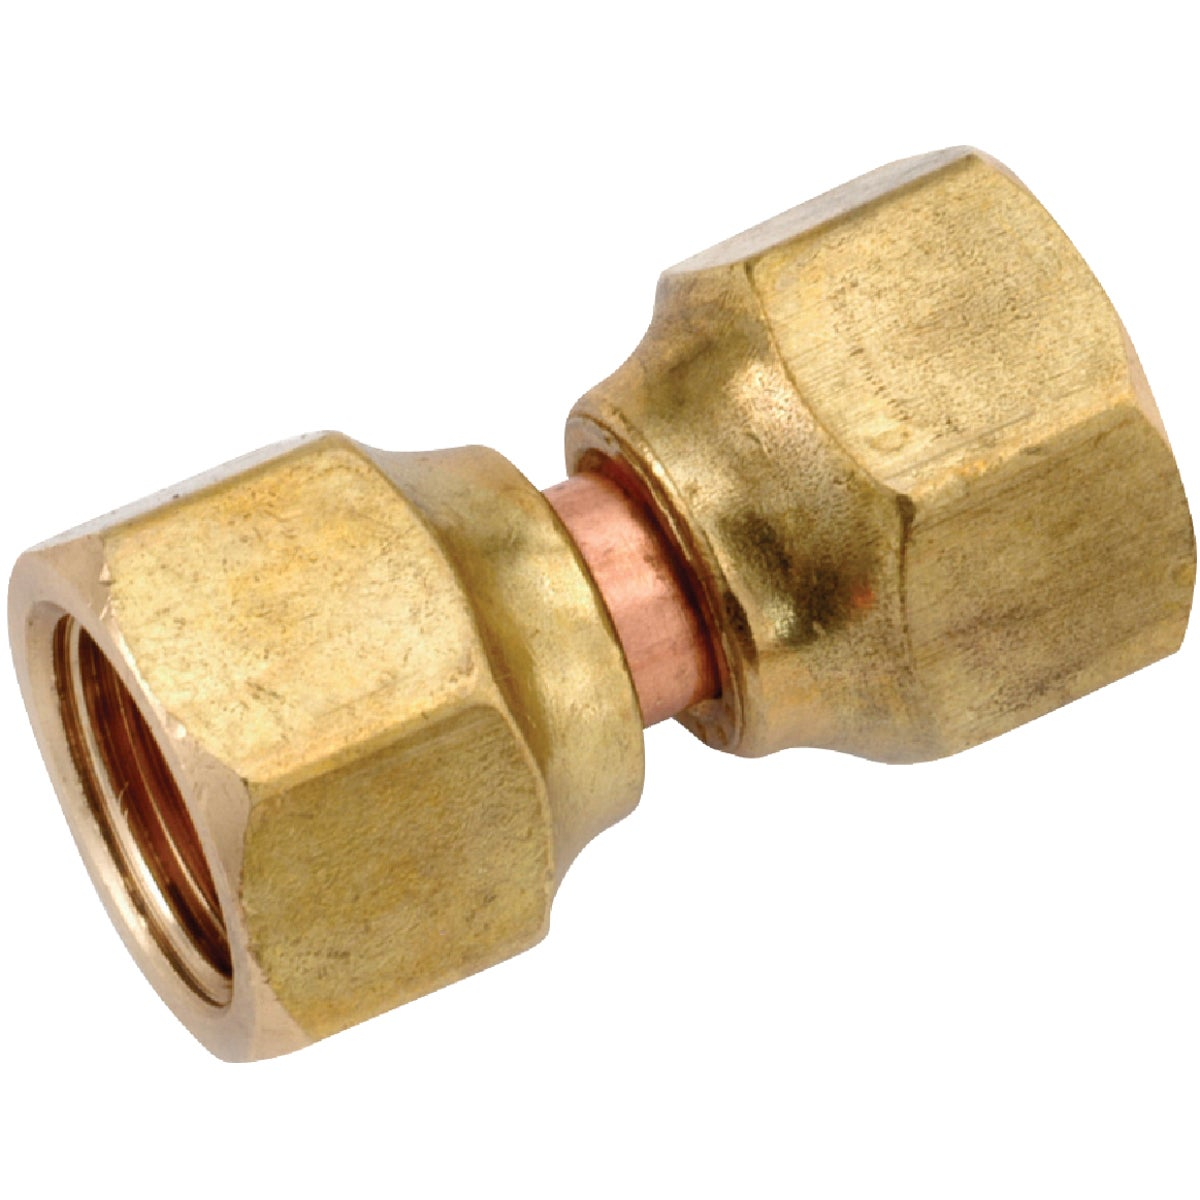 "1/2"" SWIVEL CONNECTOR - 754070-08 by Anderson Metals Corp"